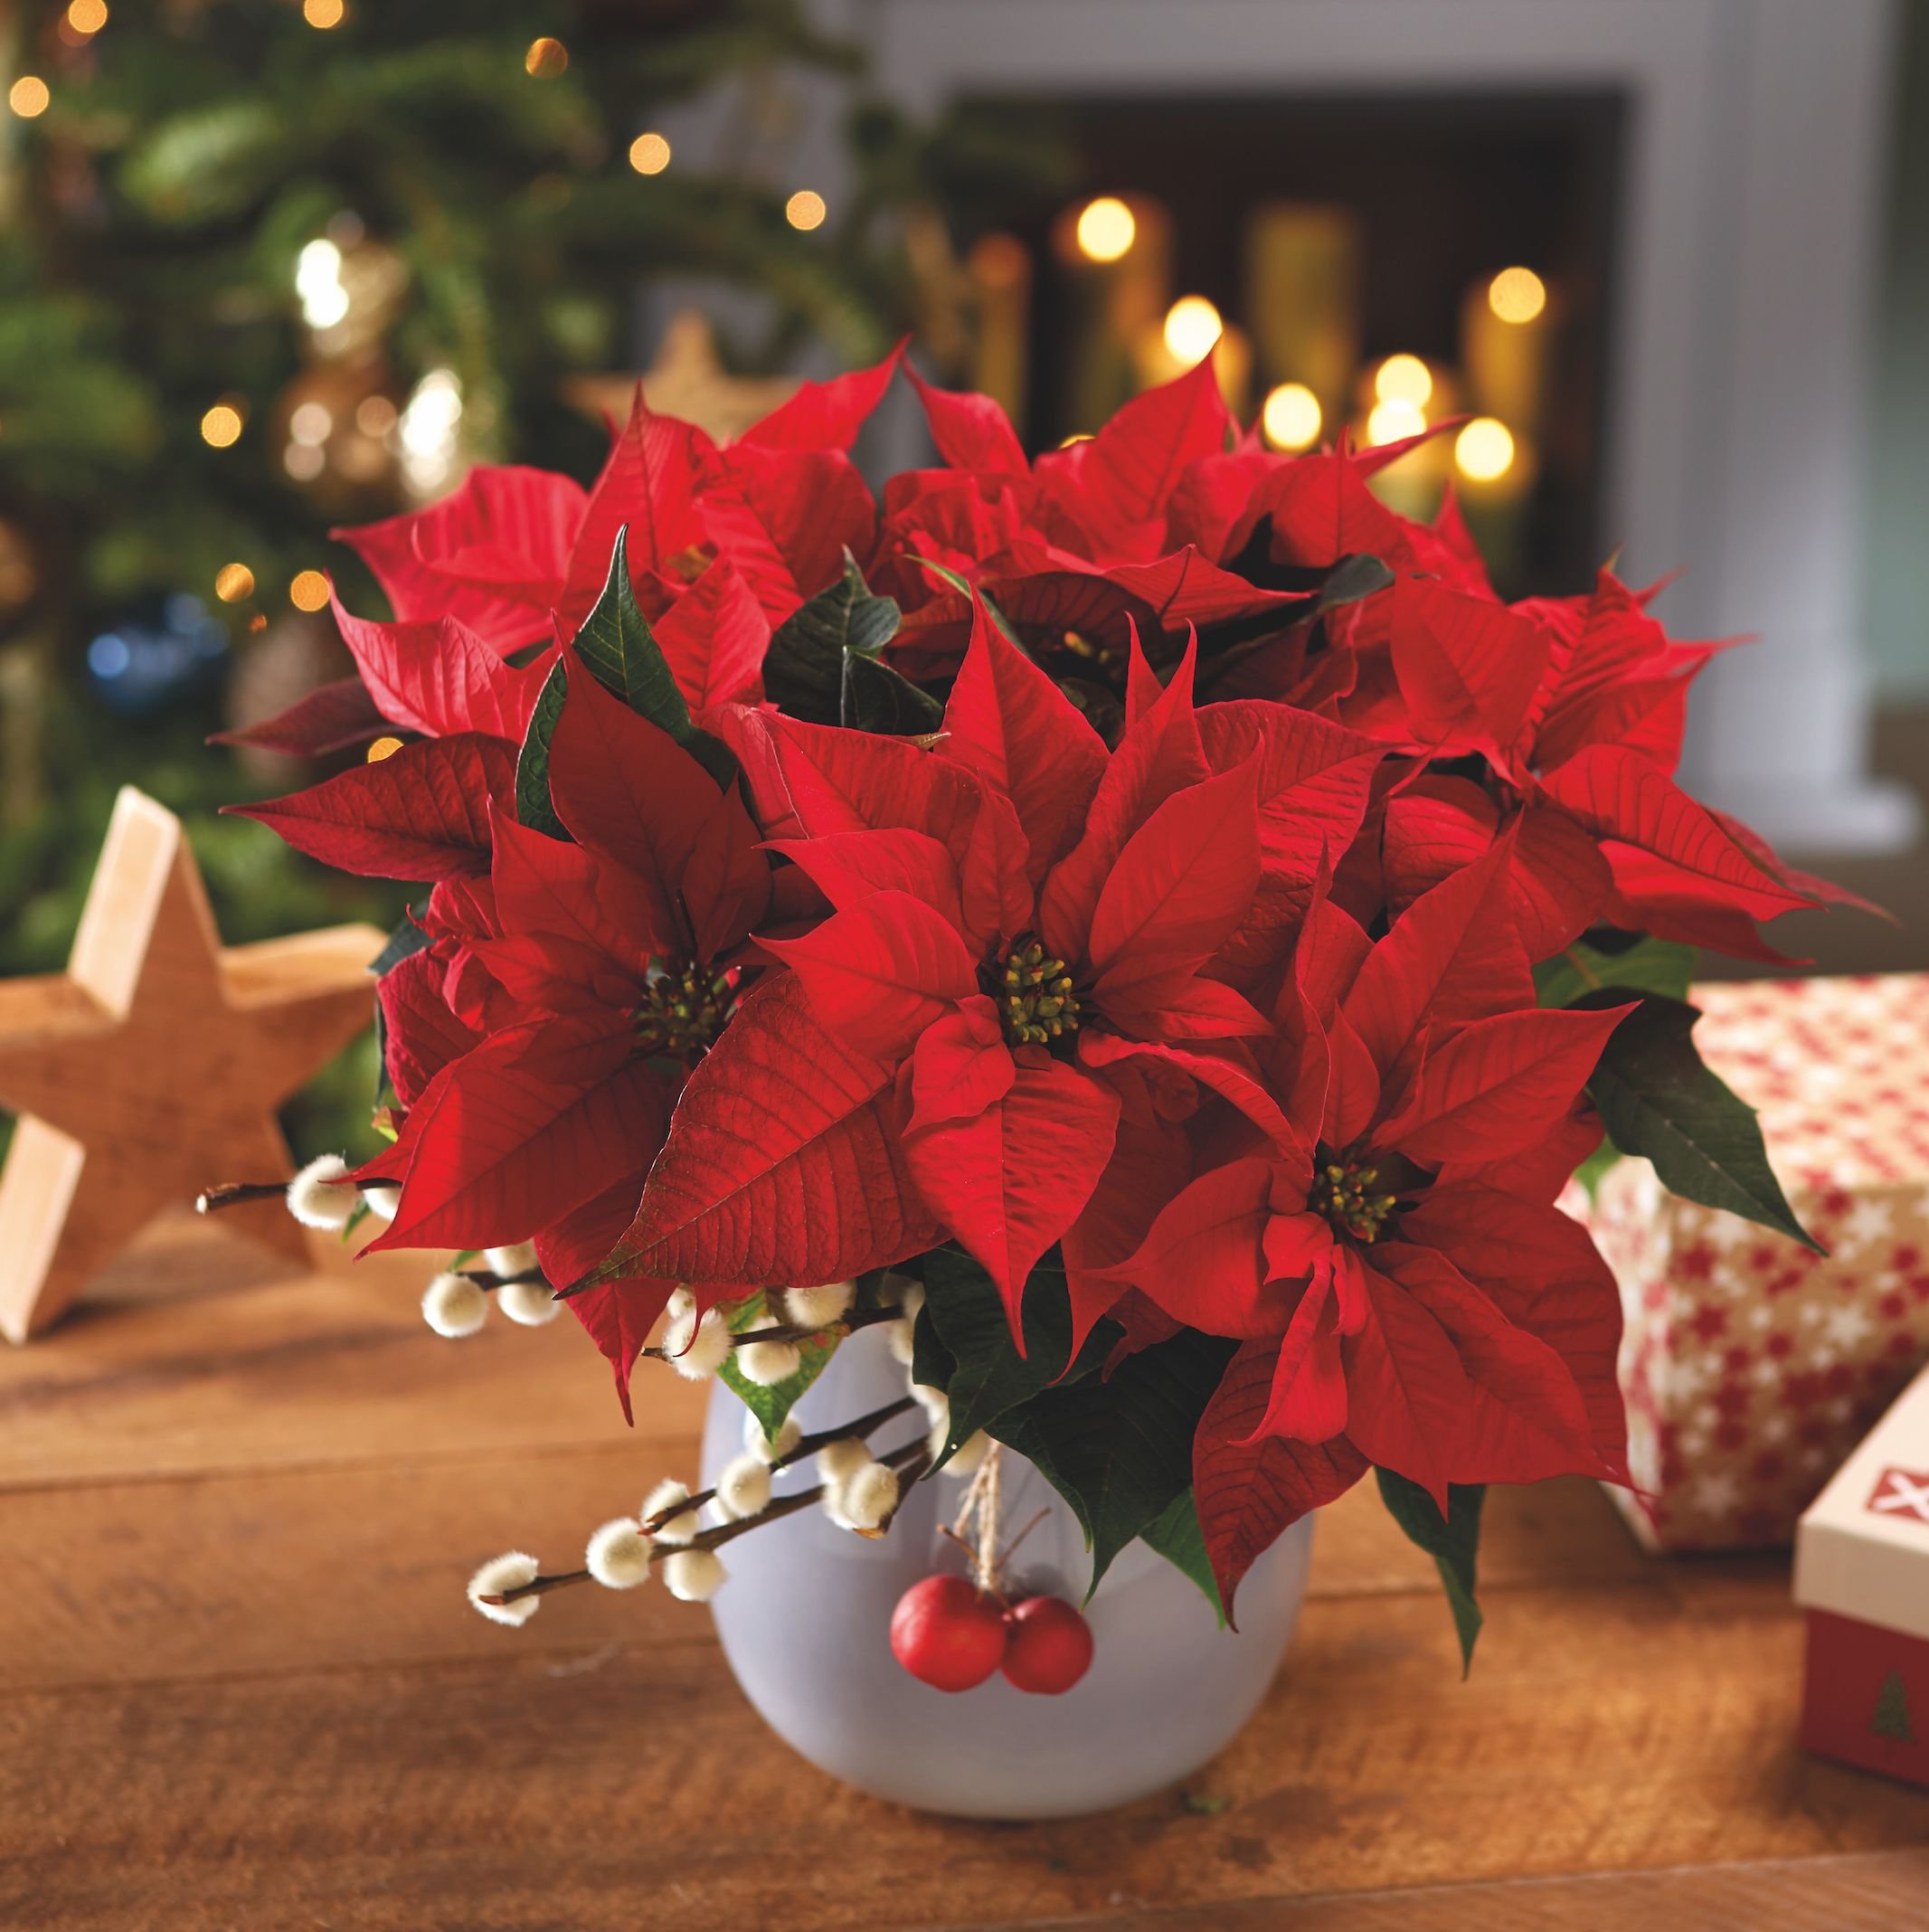 7 golden rules to extend the lifespan of your poinsettia: the perfect Christmas houseplant